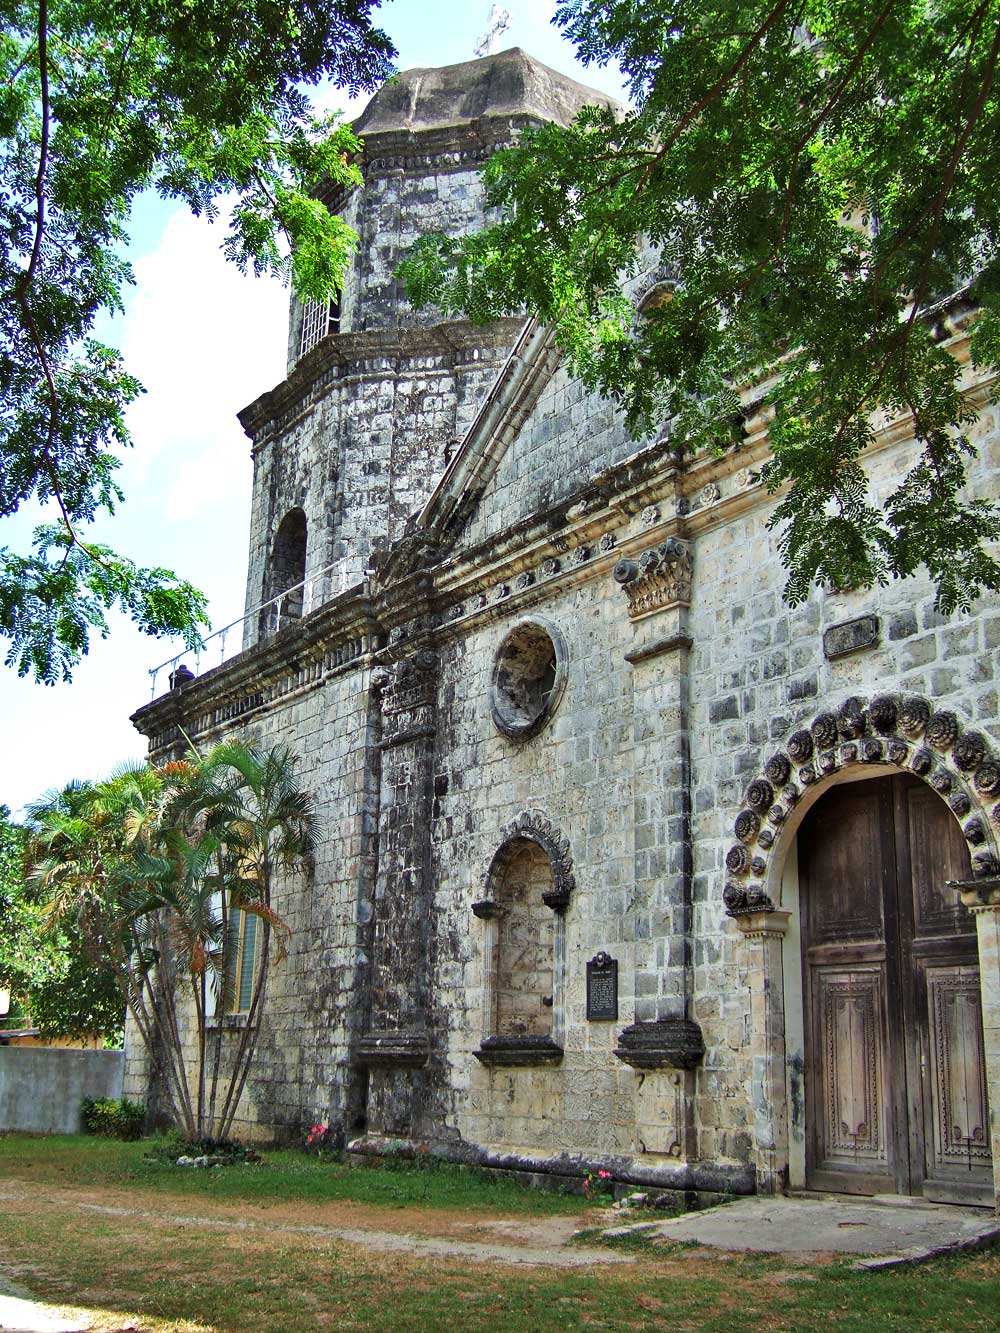 Anini-y Church